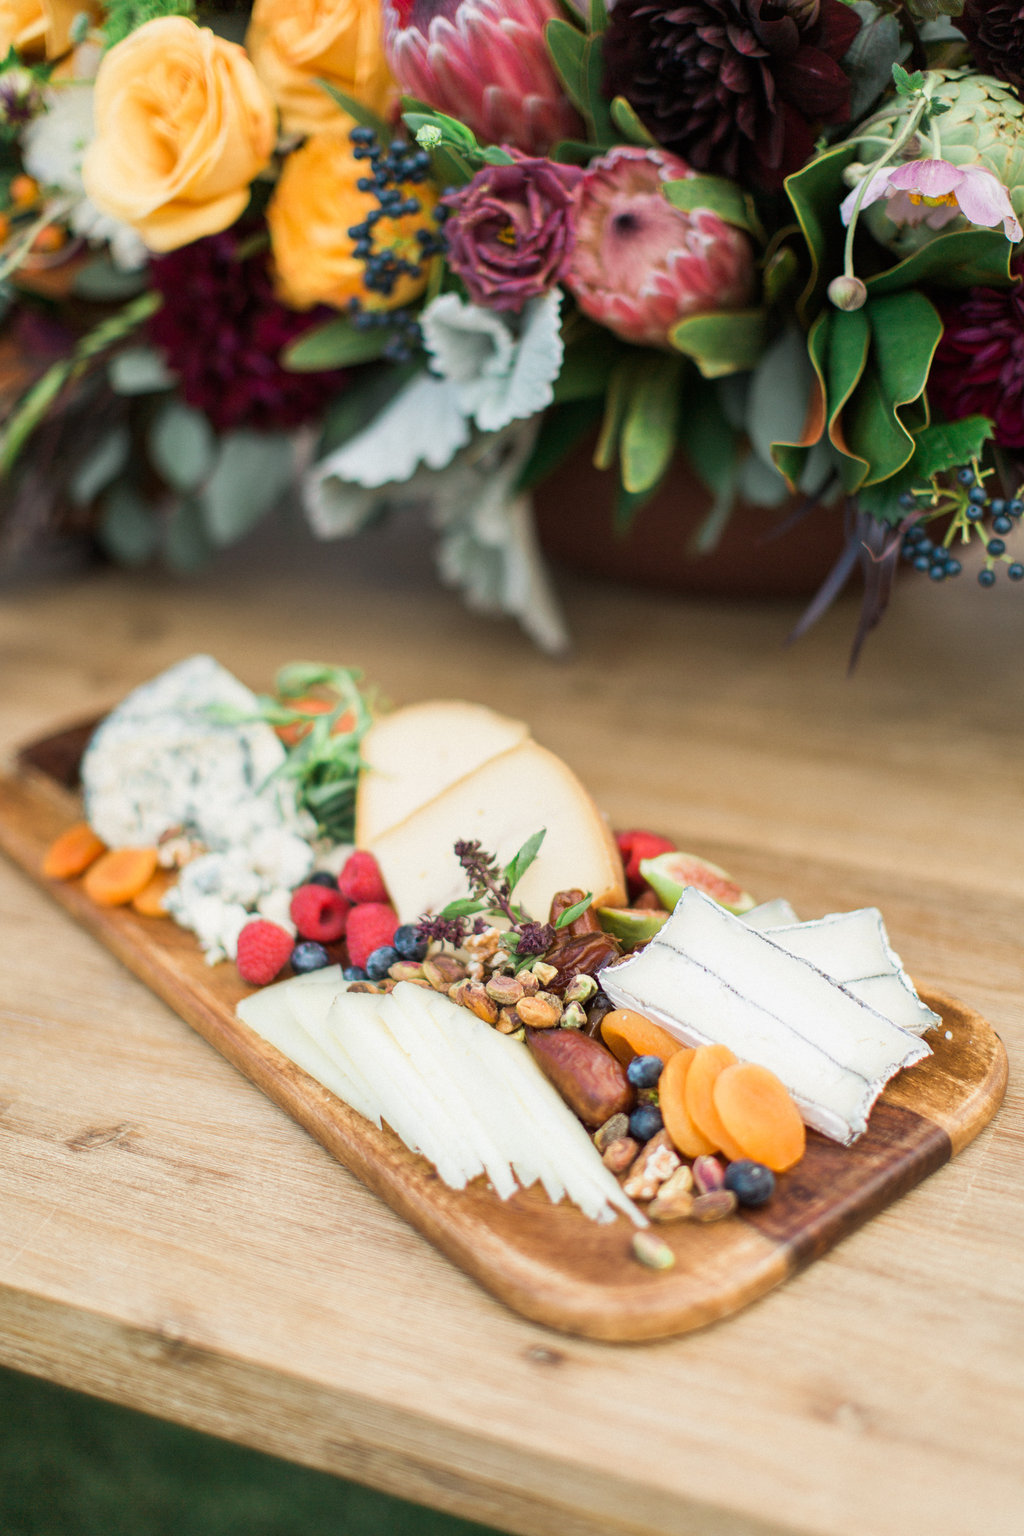 Cheese board on wood cutting board with dried fruits wedding reception styled shoot